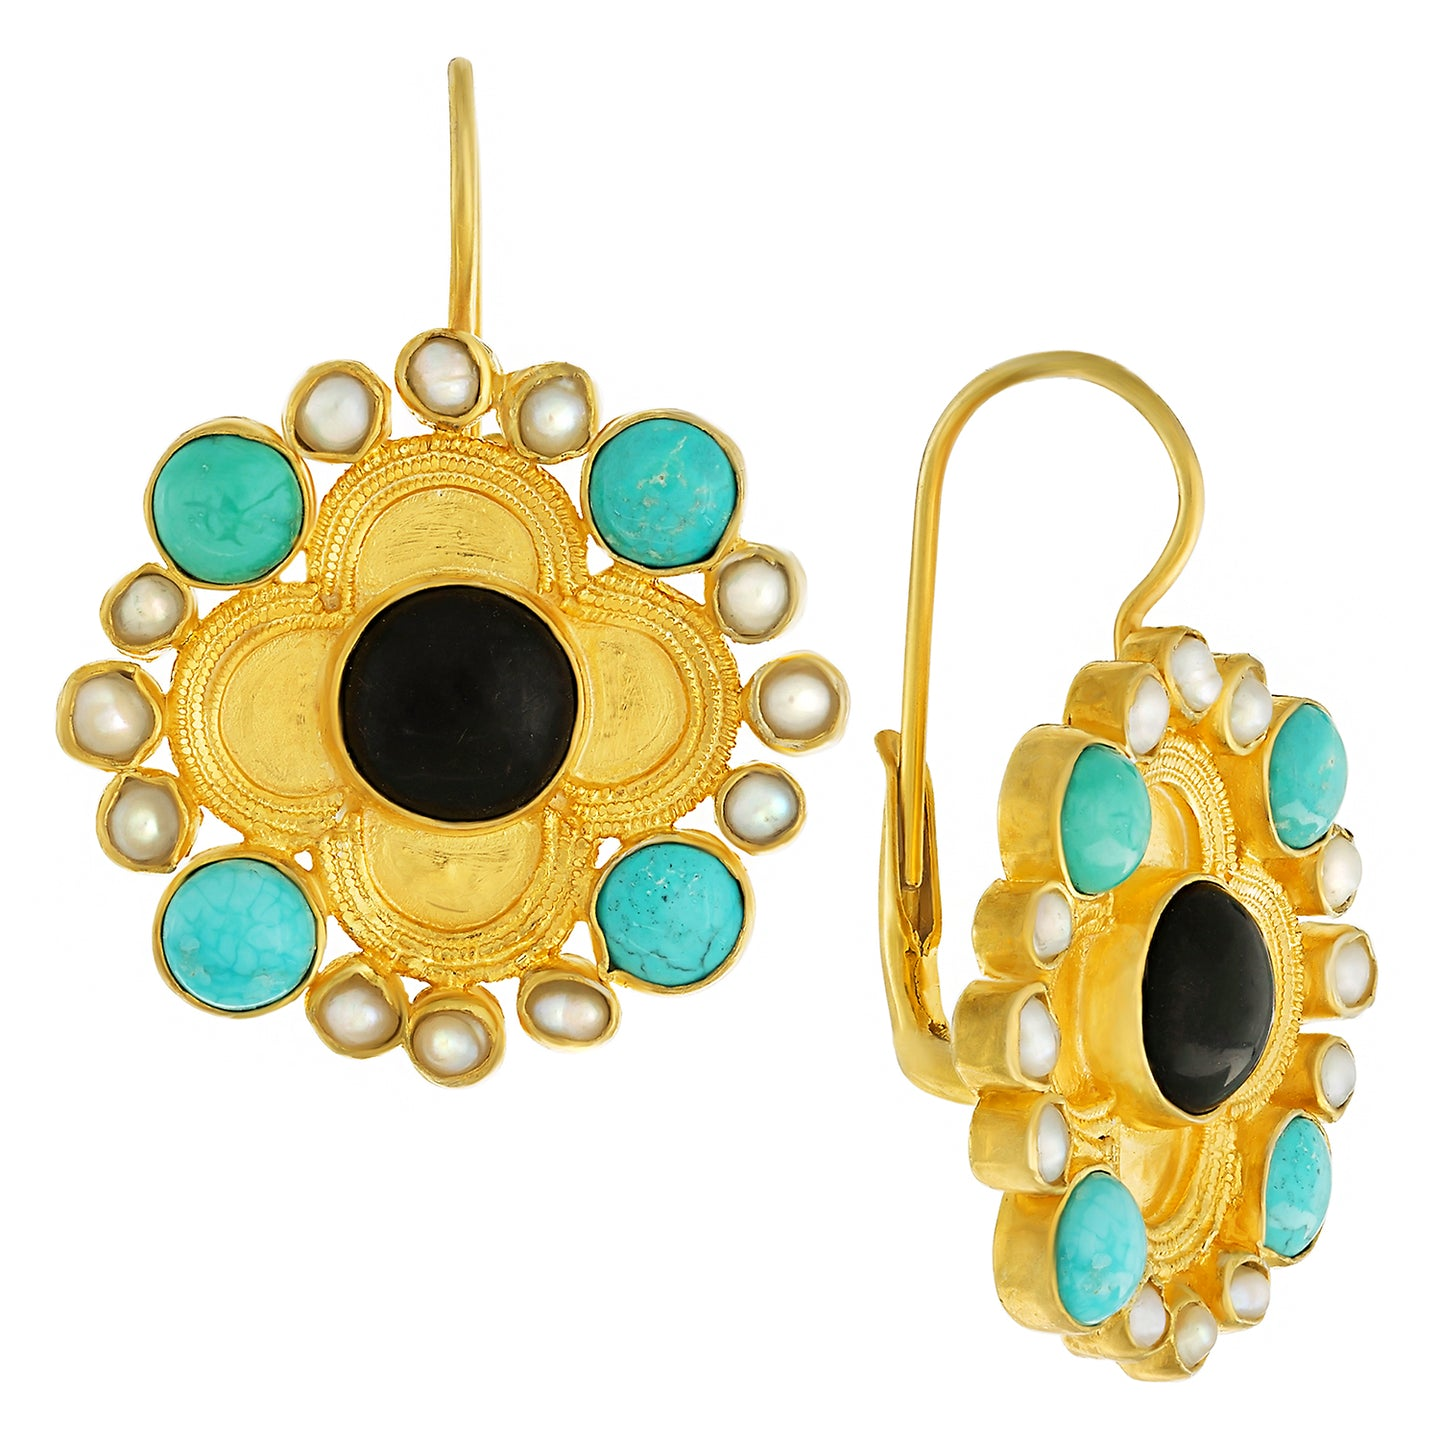 Duchess Of Alba Onyx, Turquoise and Pearl Earrings